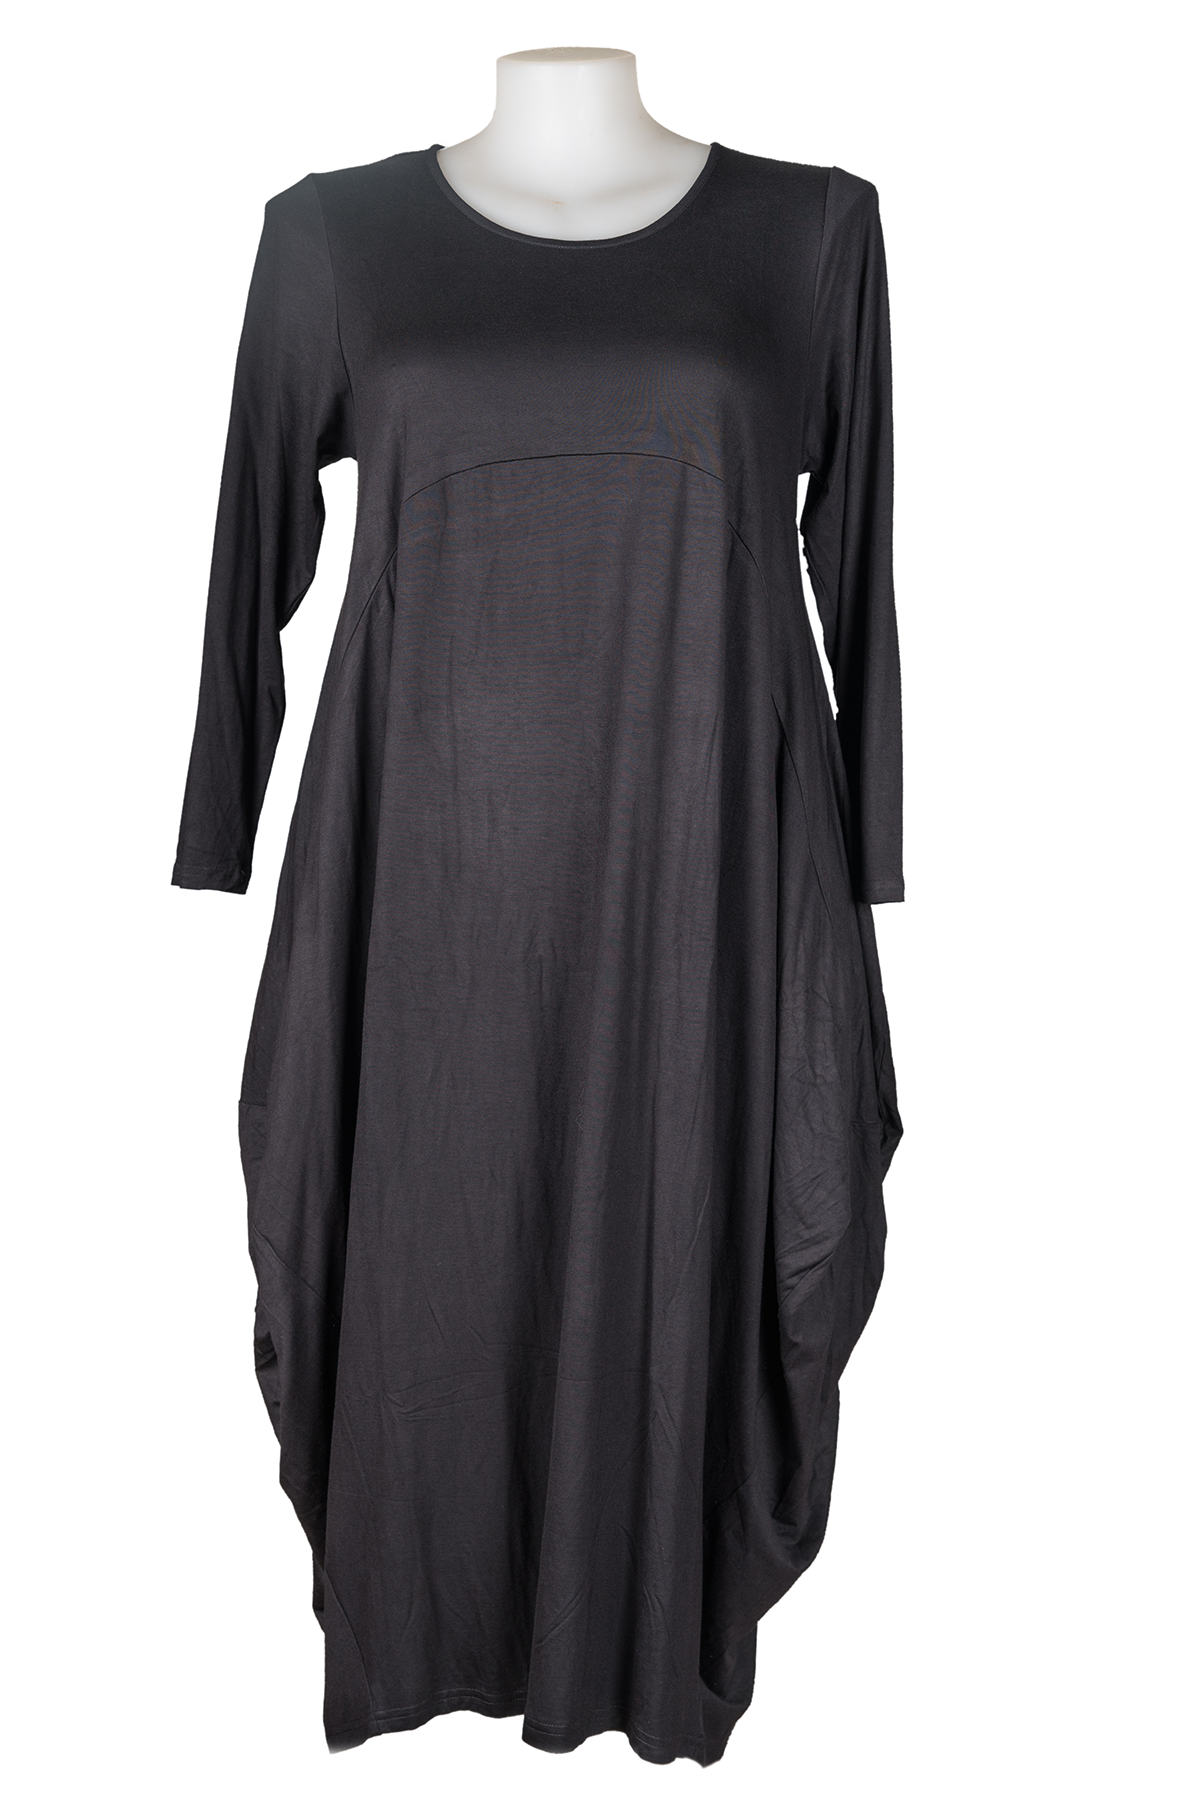 Sally Dress Long sleeves Grey